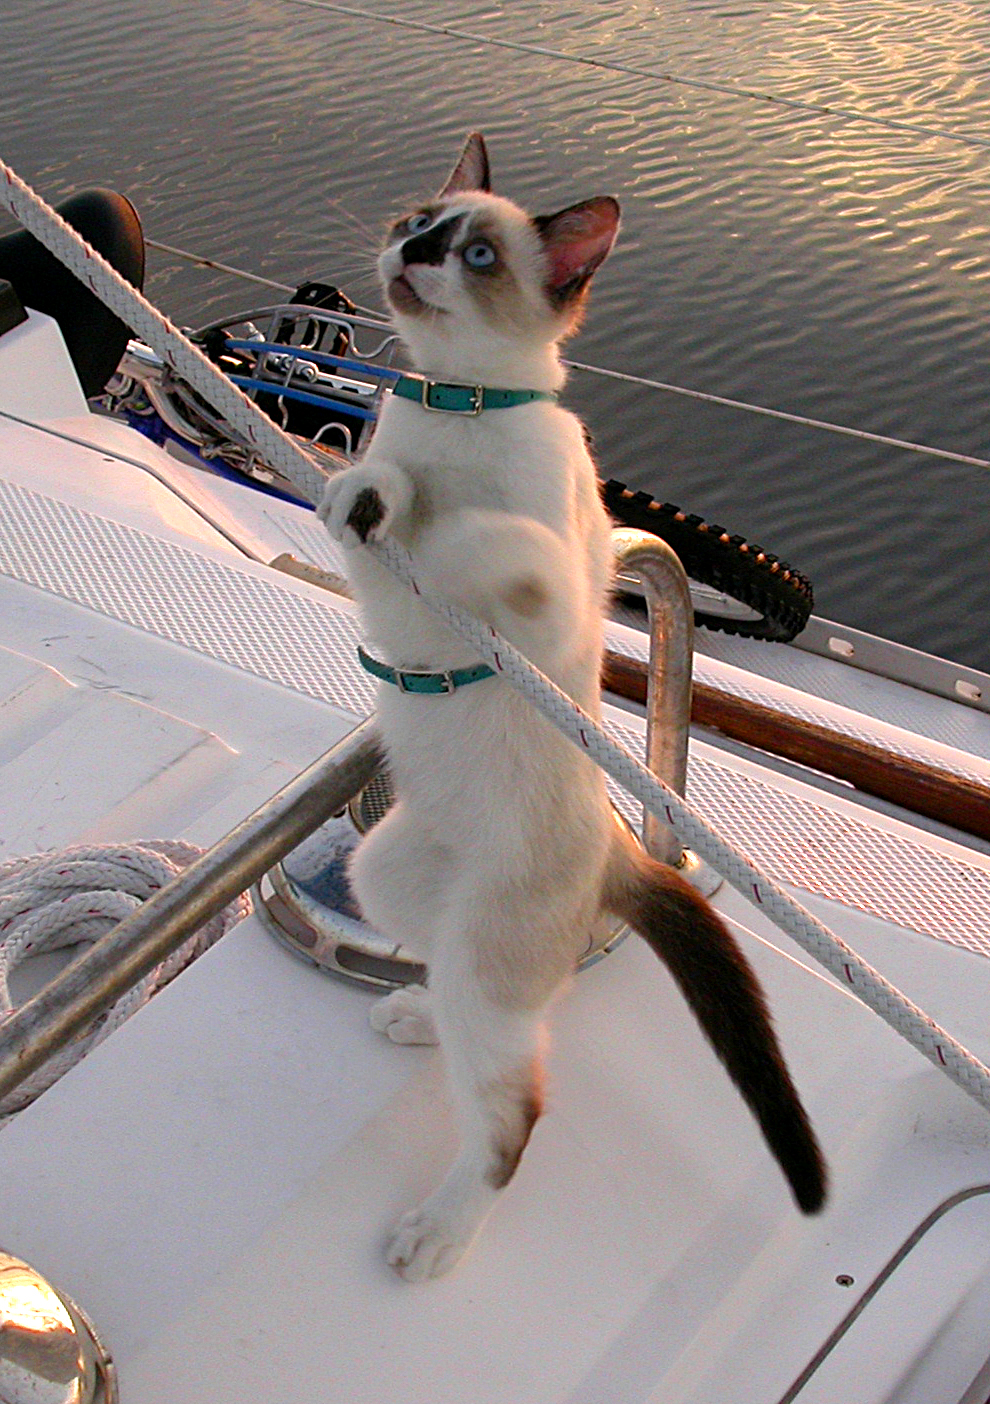 Sailor Cat by dongato from flickr (CC-NC-ND)